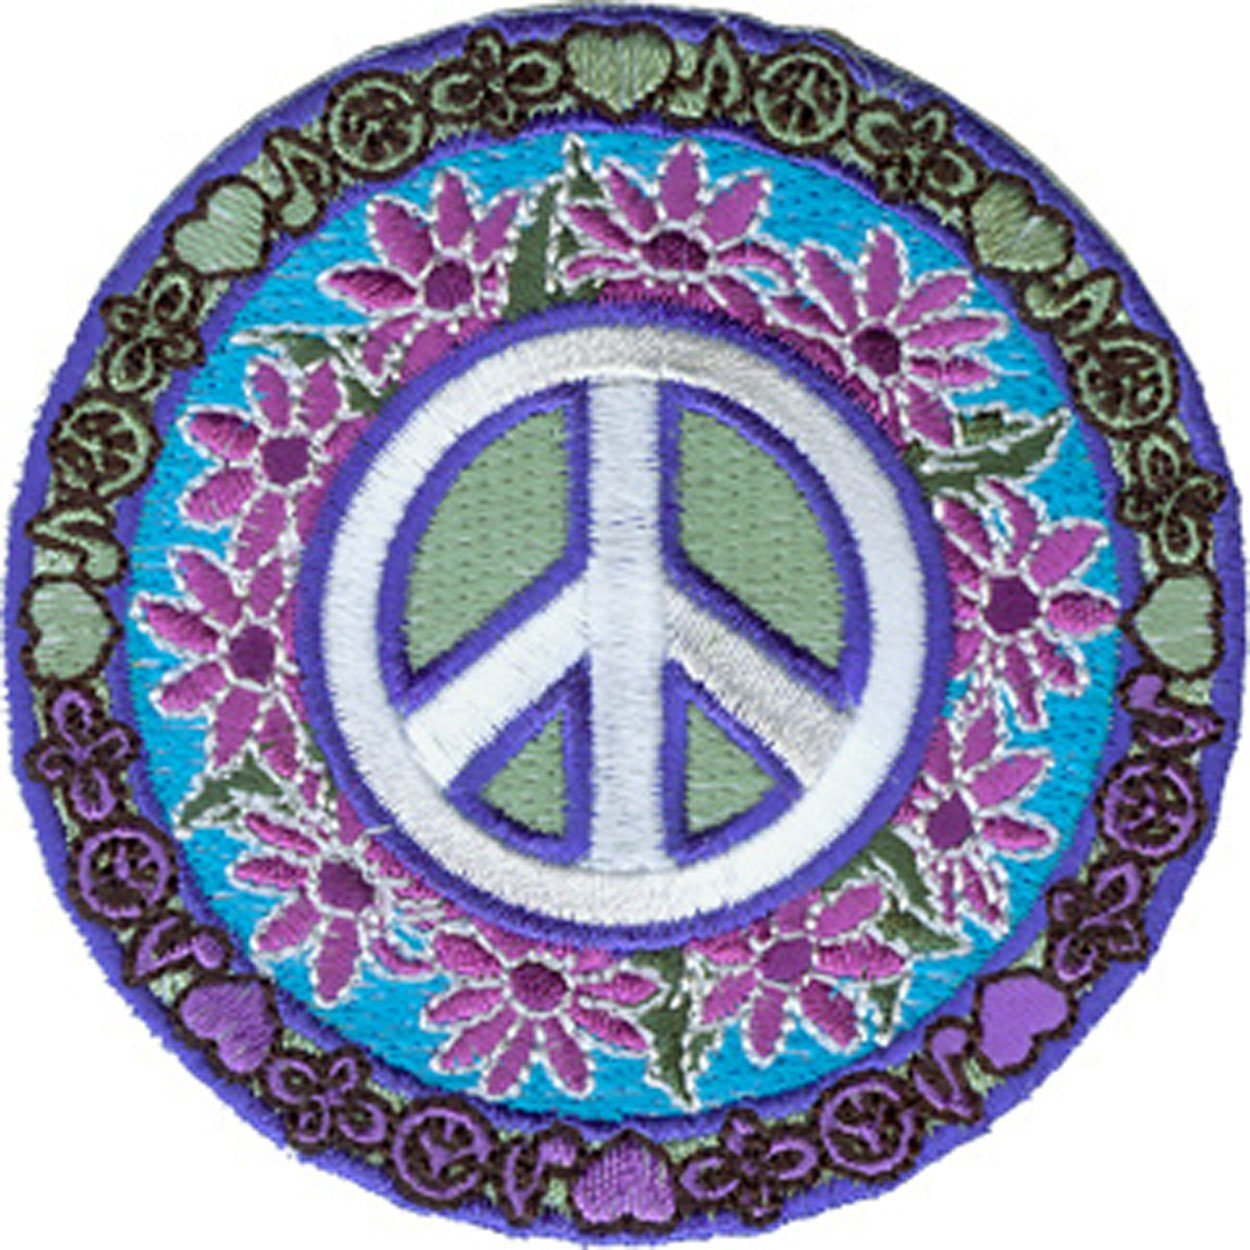 LOVE MUSIC PEACE, Officially Licensed Original Artwork, High Quality Iron-On / Sew-On, 3' x 3' Embroidered Patch